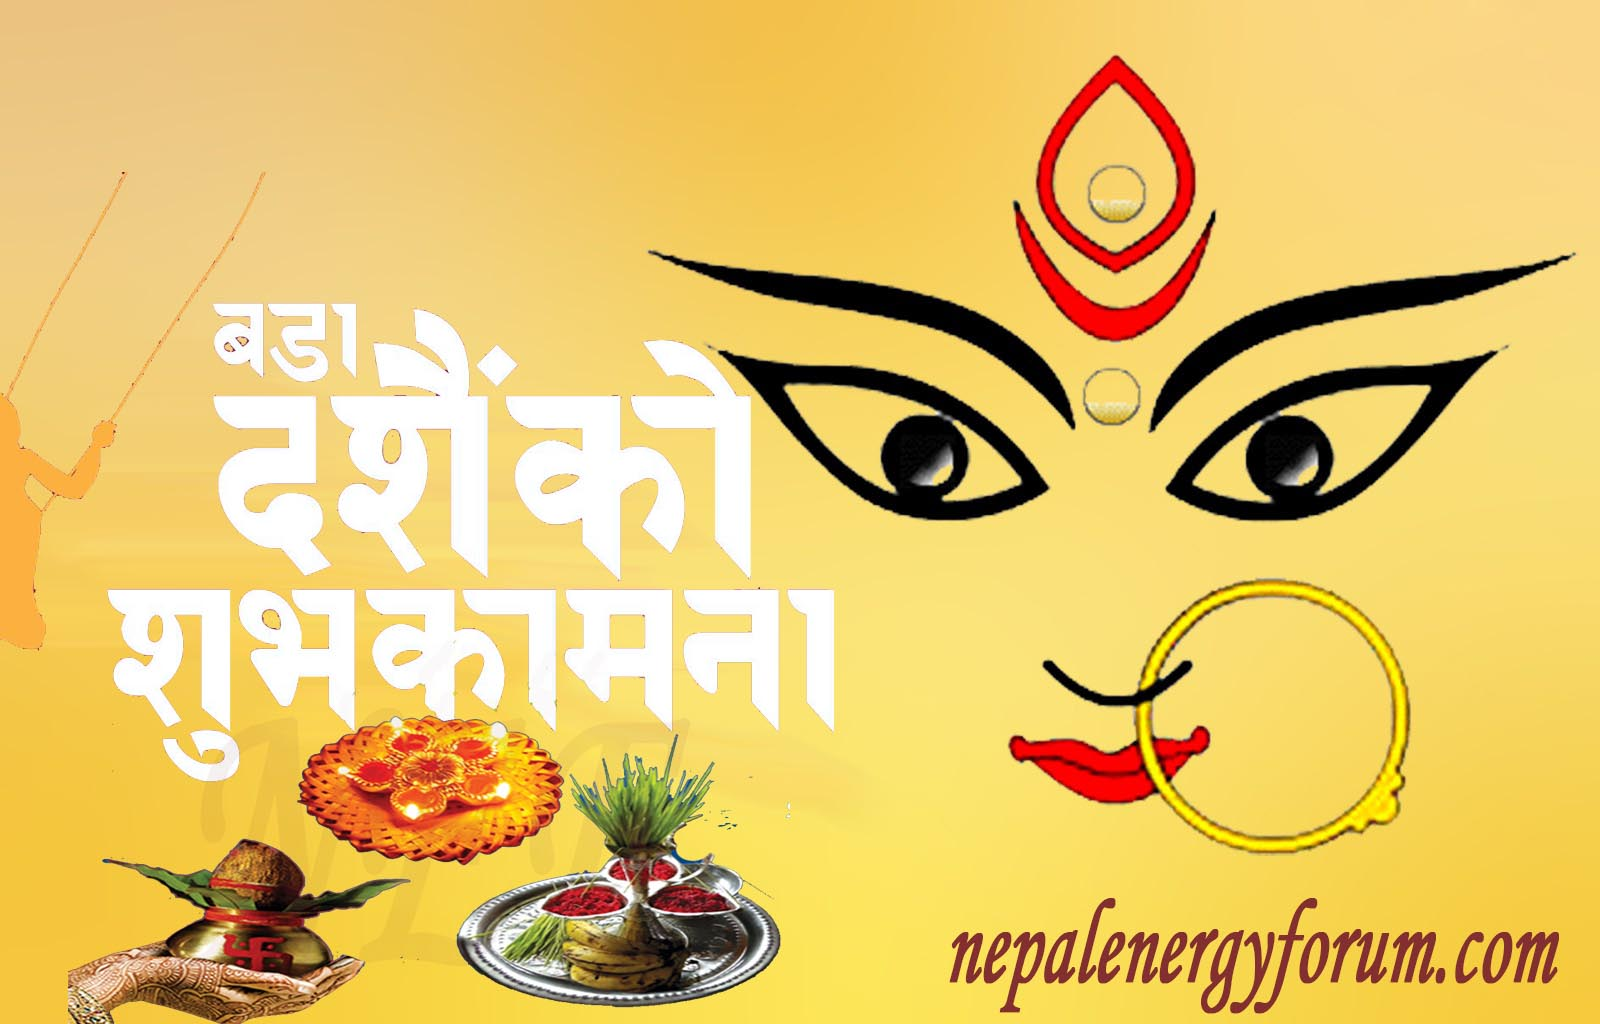 Dashain greetings nepal energy forum wish to you and your family for a very happy and prosperous dashain m4hsunfo